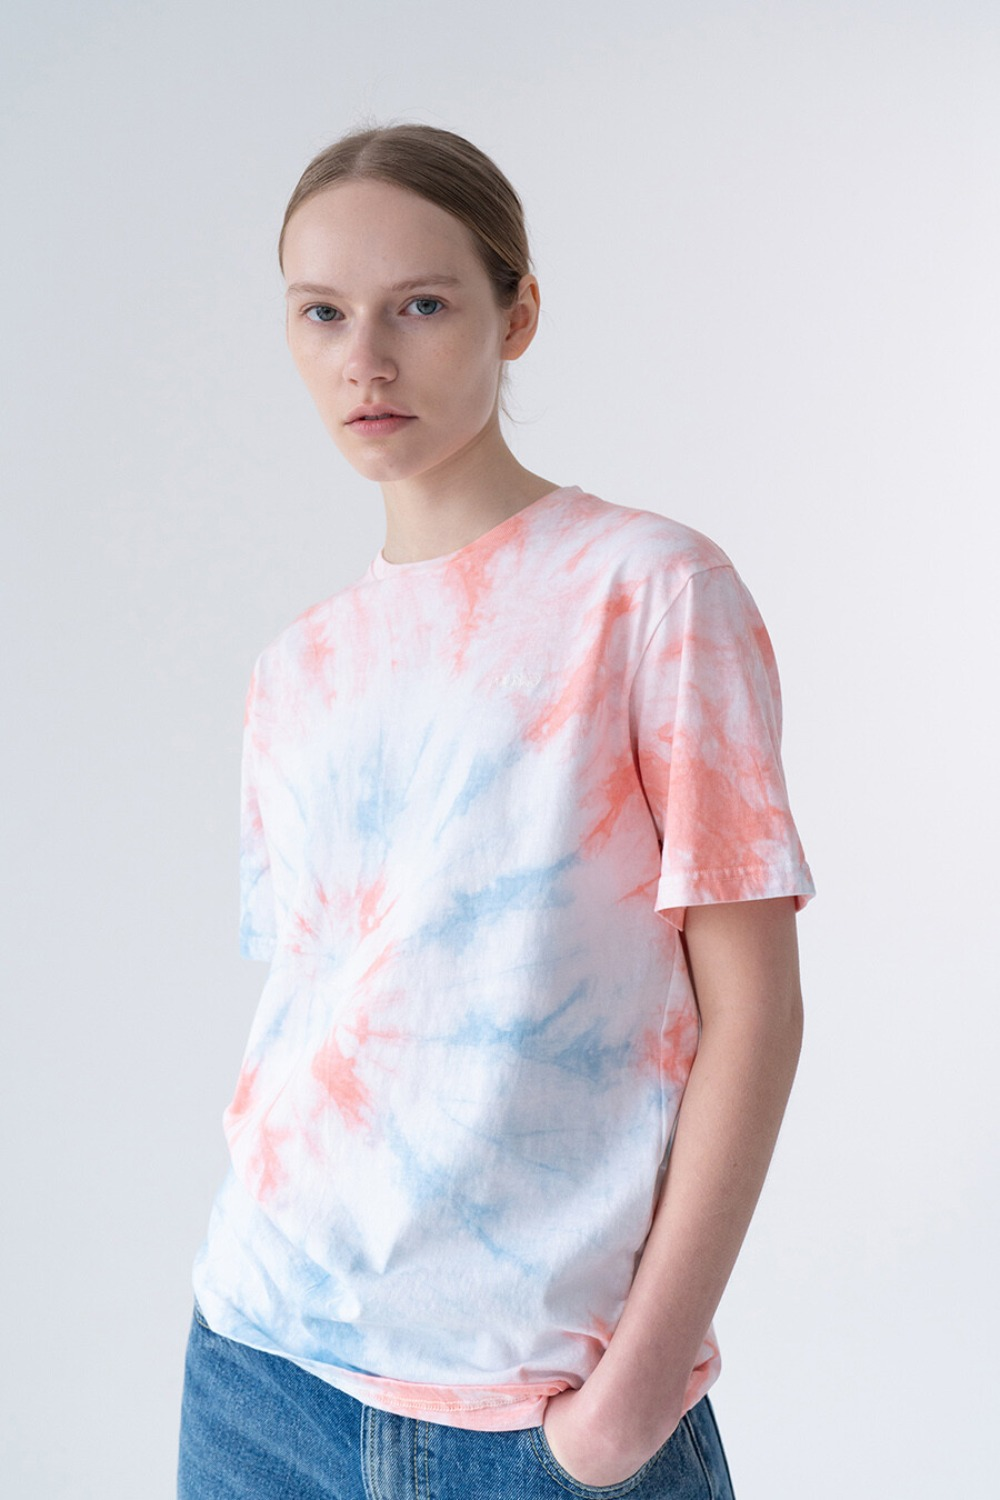 HAND TIE-DYE T-SHIRT WHITE+ MIXED